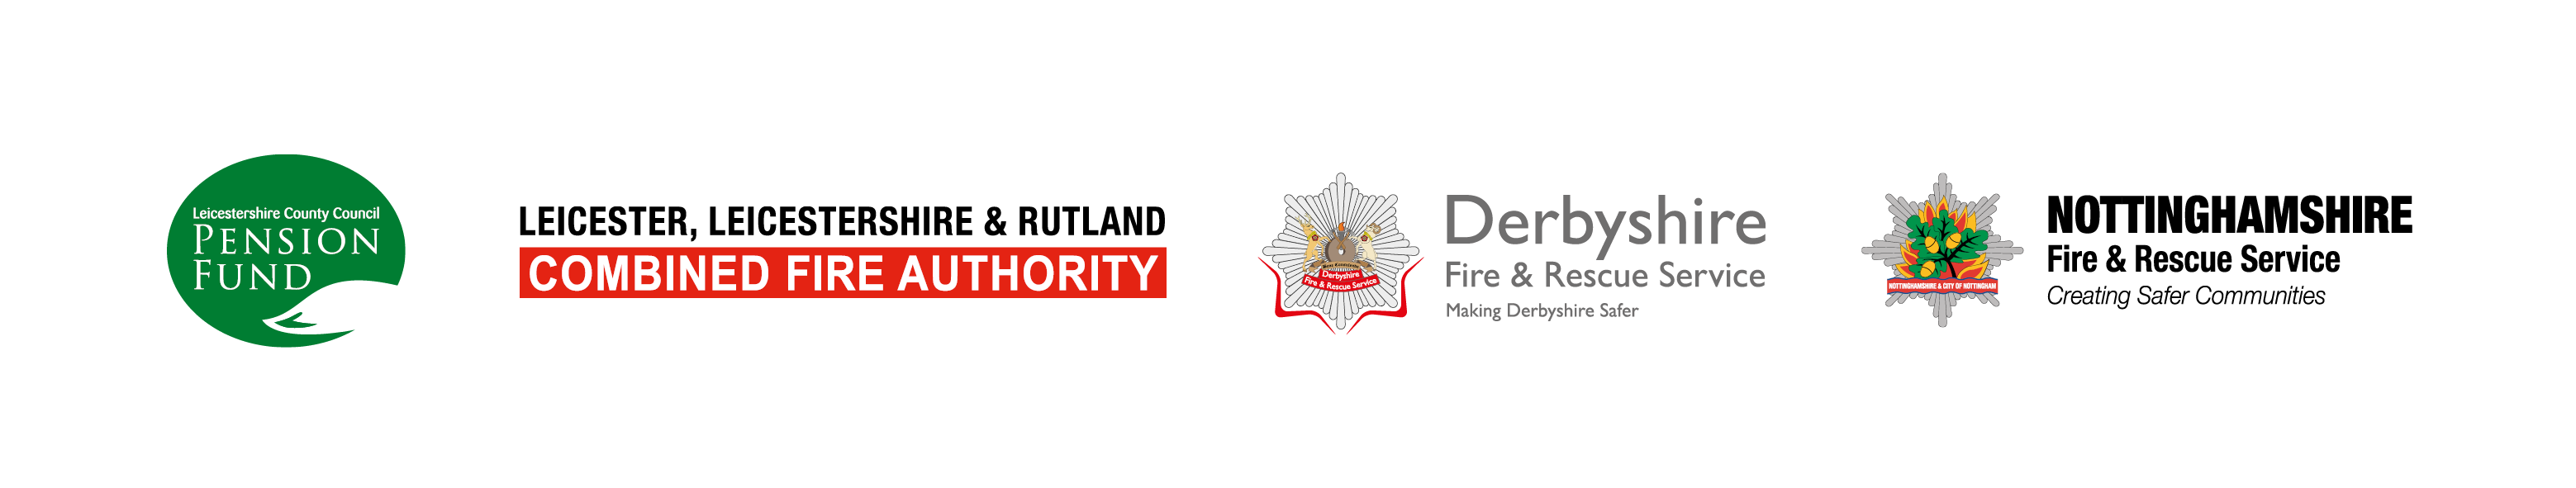 The logos of Leicestershire County Council Pension Fund, Leicester, Leicestershire and Rutland Combined Fire Authority, Derbyshire Fire and Rescue Service and Nottinghamshire Fire and Rescue Service.